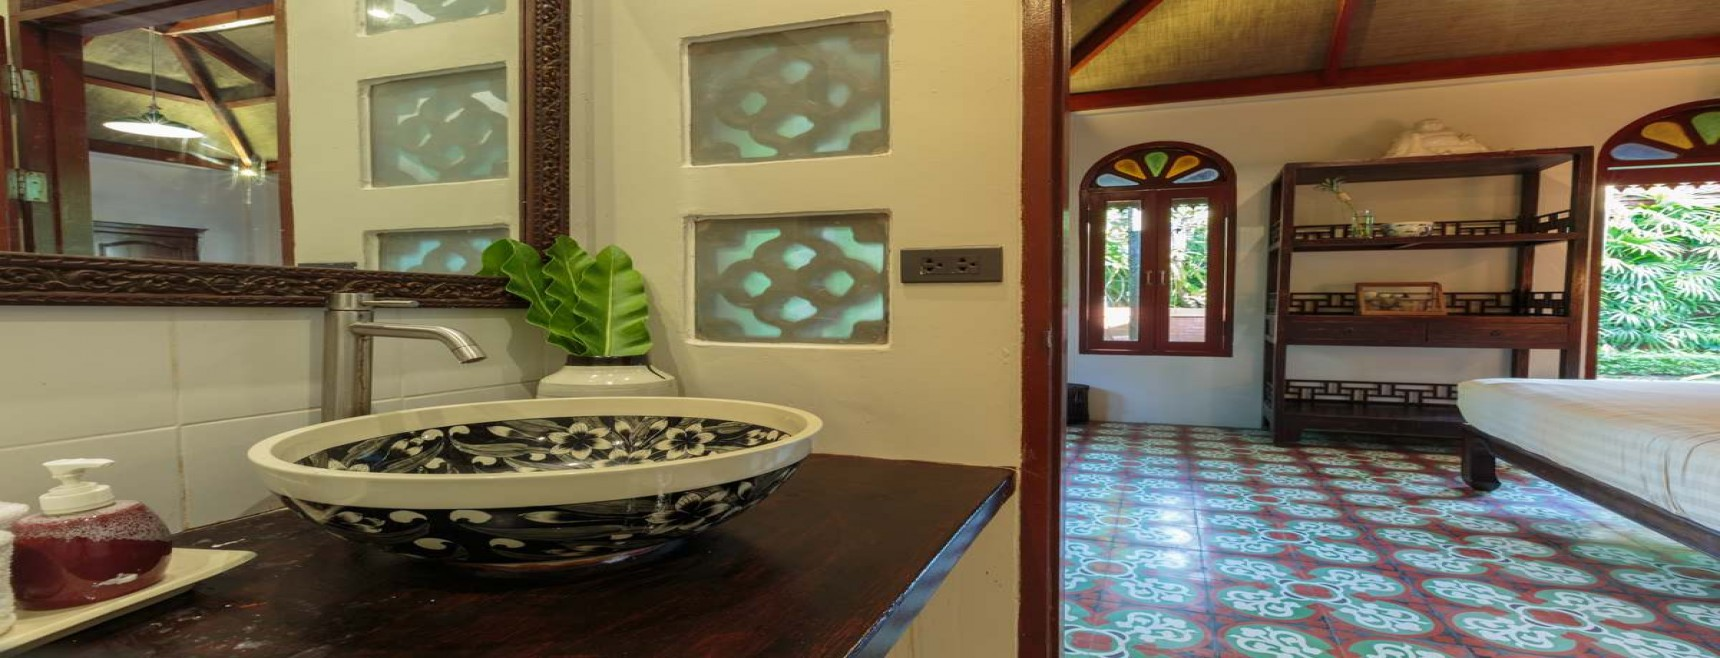 4 Bedrooms, Villa, Residential Sales, 4 Bathrooms, Listing ID 1370, Taling Ngam, South West, Koh Samui,